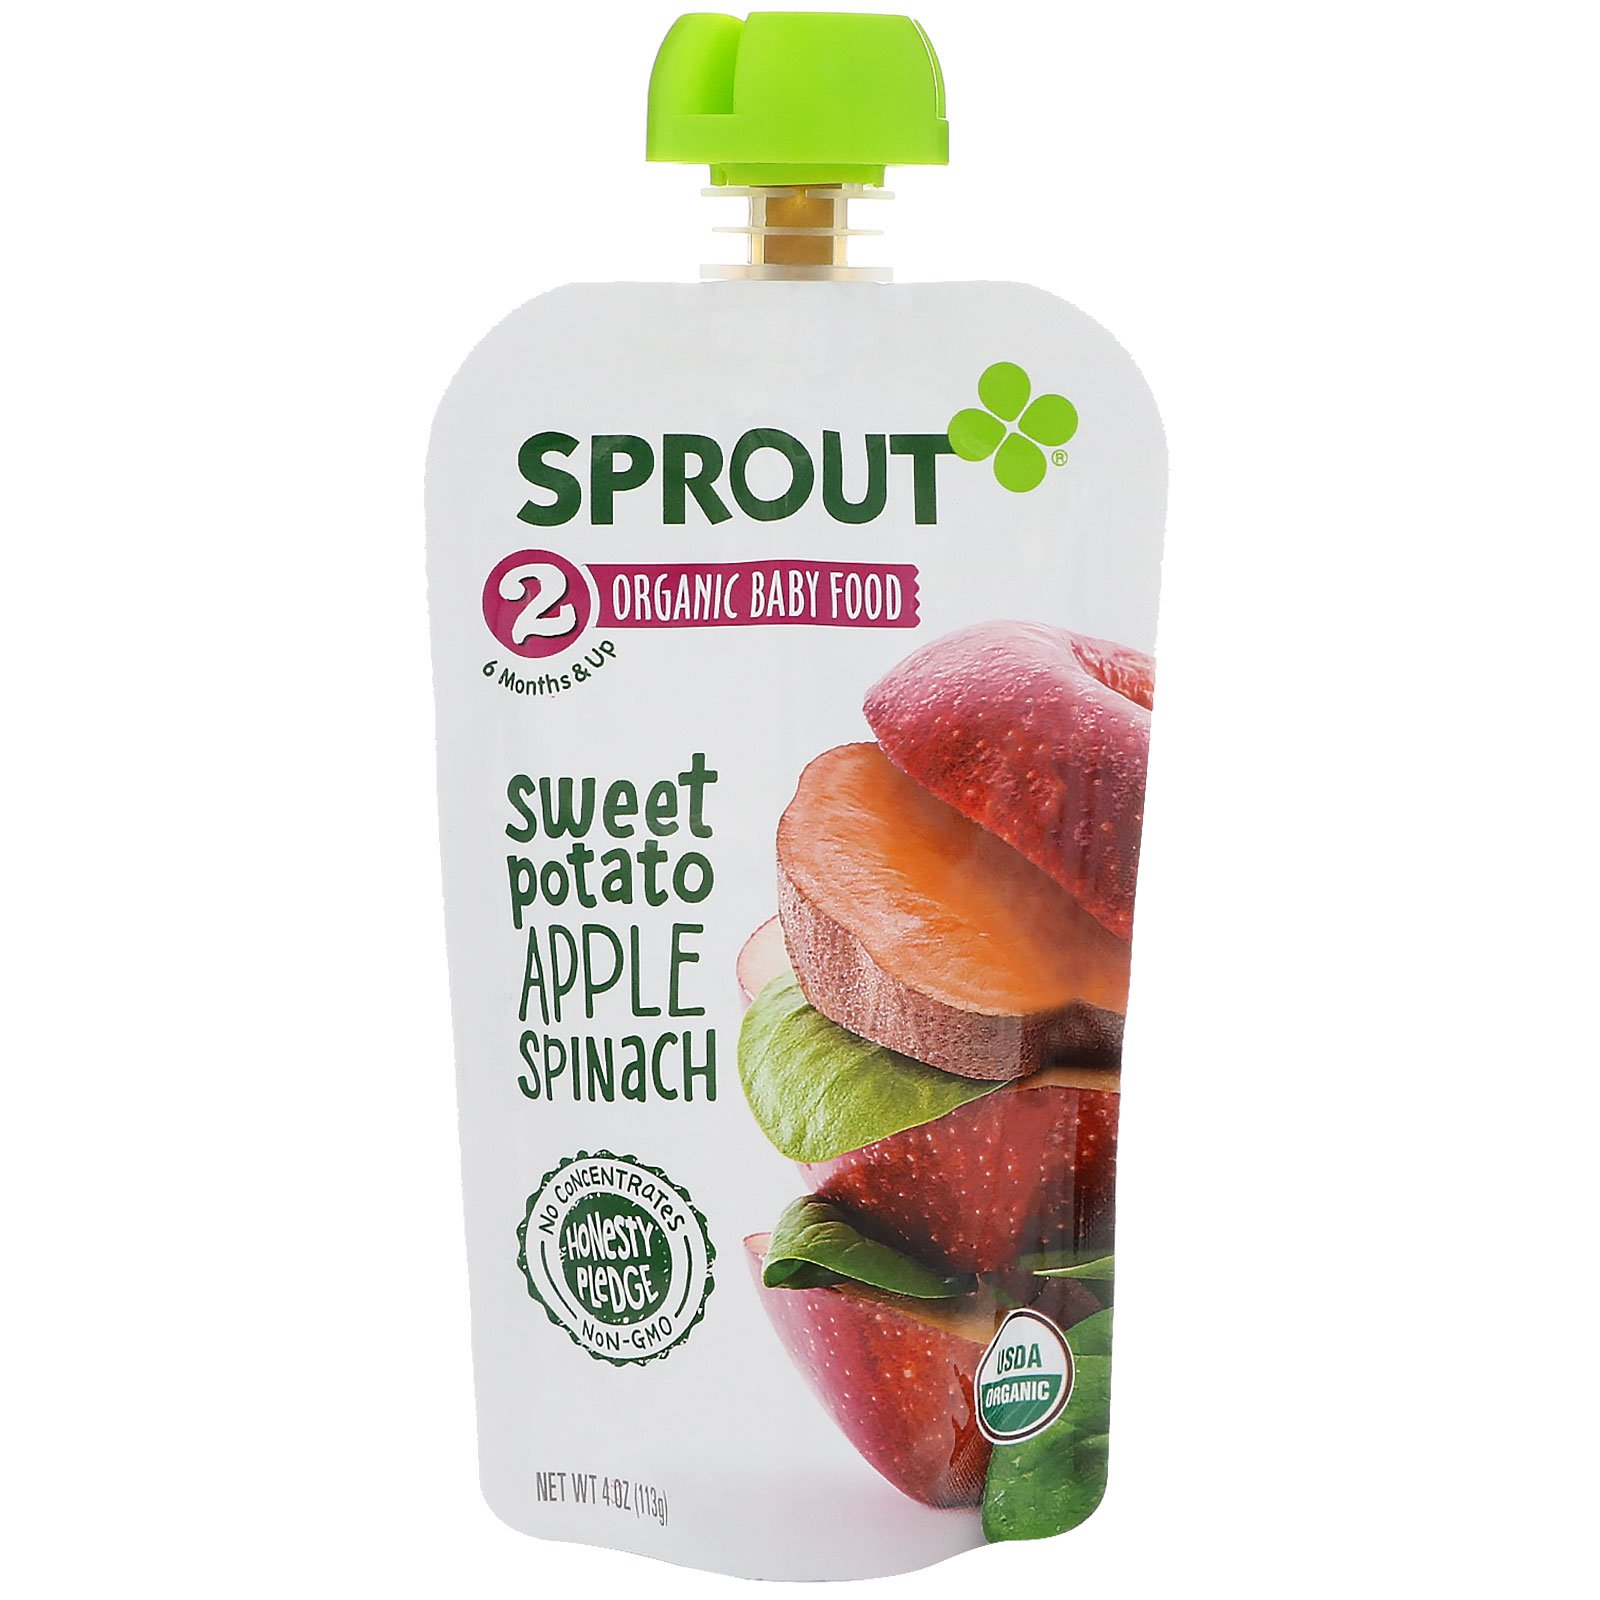 Sprout Organic Baby Food Stage 2 Sweet Potato Apple Spinach 4 oz 113 g by Sprout Organic